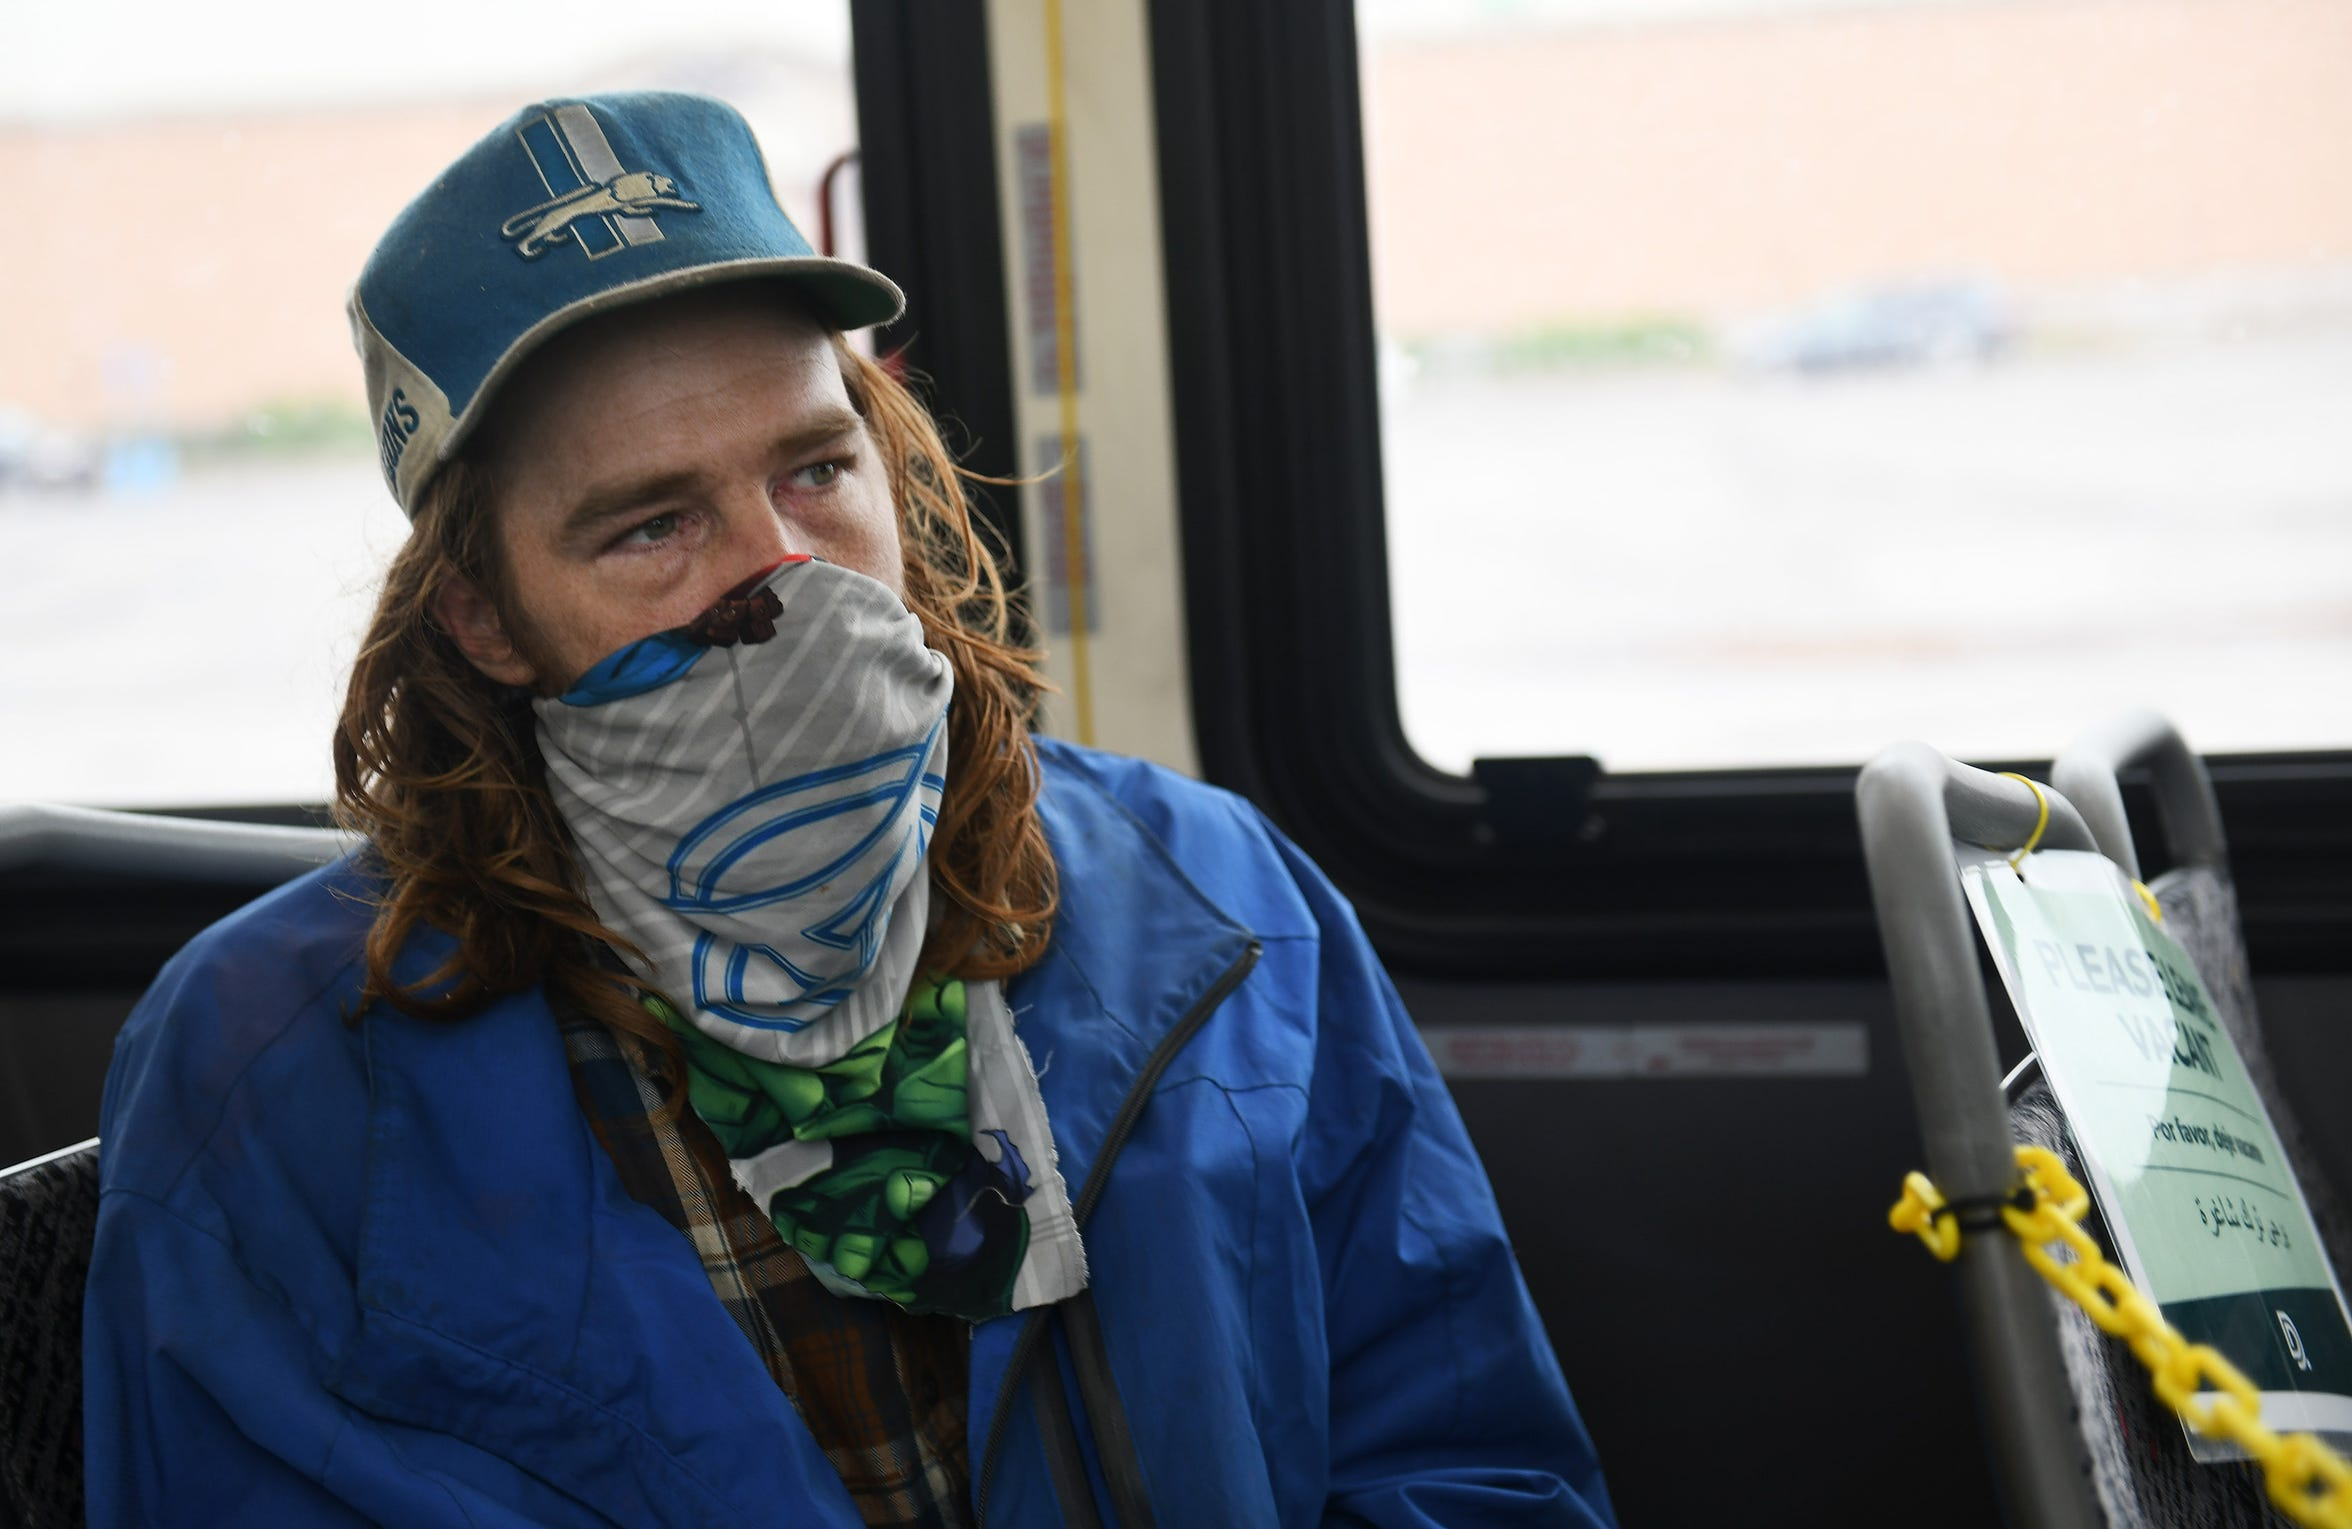 William McLoven, 35, of Detroit talks about riding the DDOT bus in Detroit on May 18, 2020. McLoven, who says he is homeless and squats in an empty home, made his mask from a bedsheet and says he makes one every few days.